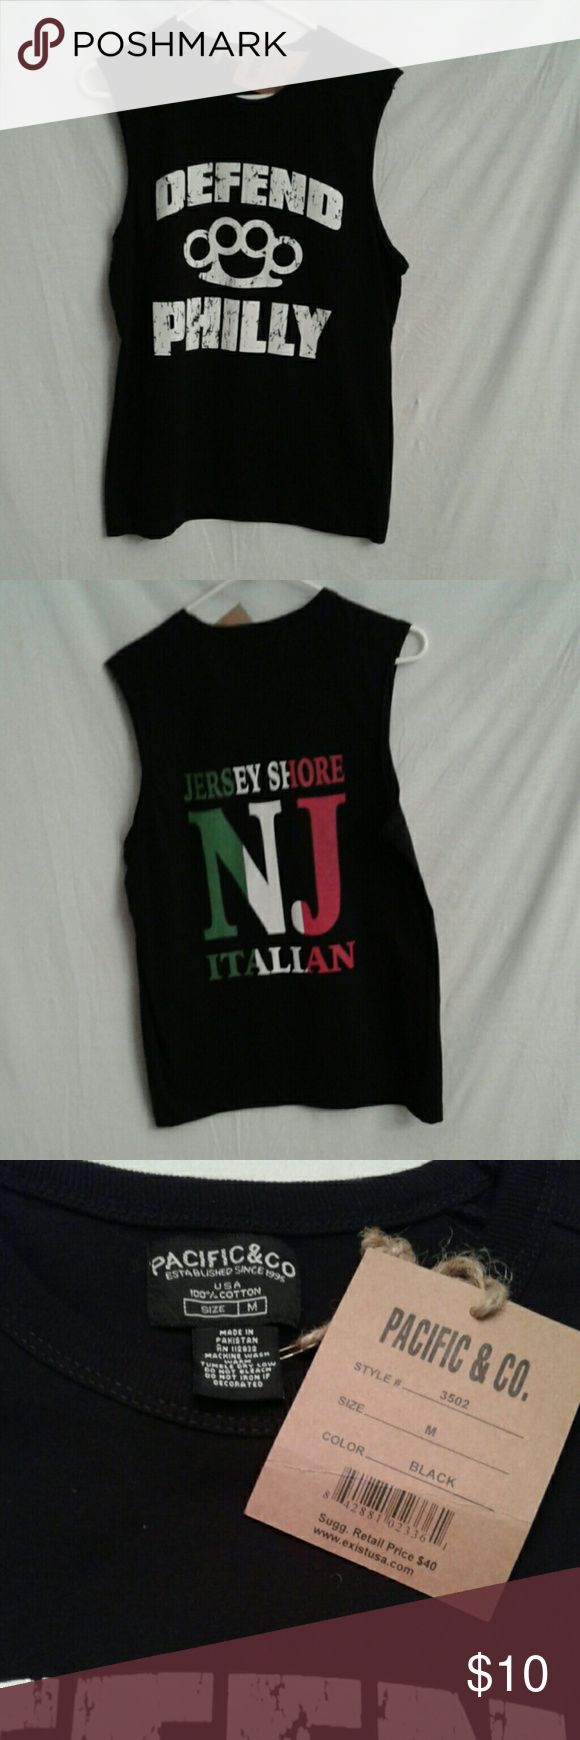 NWT men's black sleeveless tee sz M Pacific & Co sleeveless, 100% cotton men's tee sz M. The front has Defend Philly and a set of brass knuckles done in distressed white lettering. The back has Jersey Shore NJ Italian done in green white and red, like the Italian flag. This new shirt has a retro vibe. Pacific & Co Shirts Tees - Short Sleeve